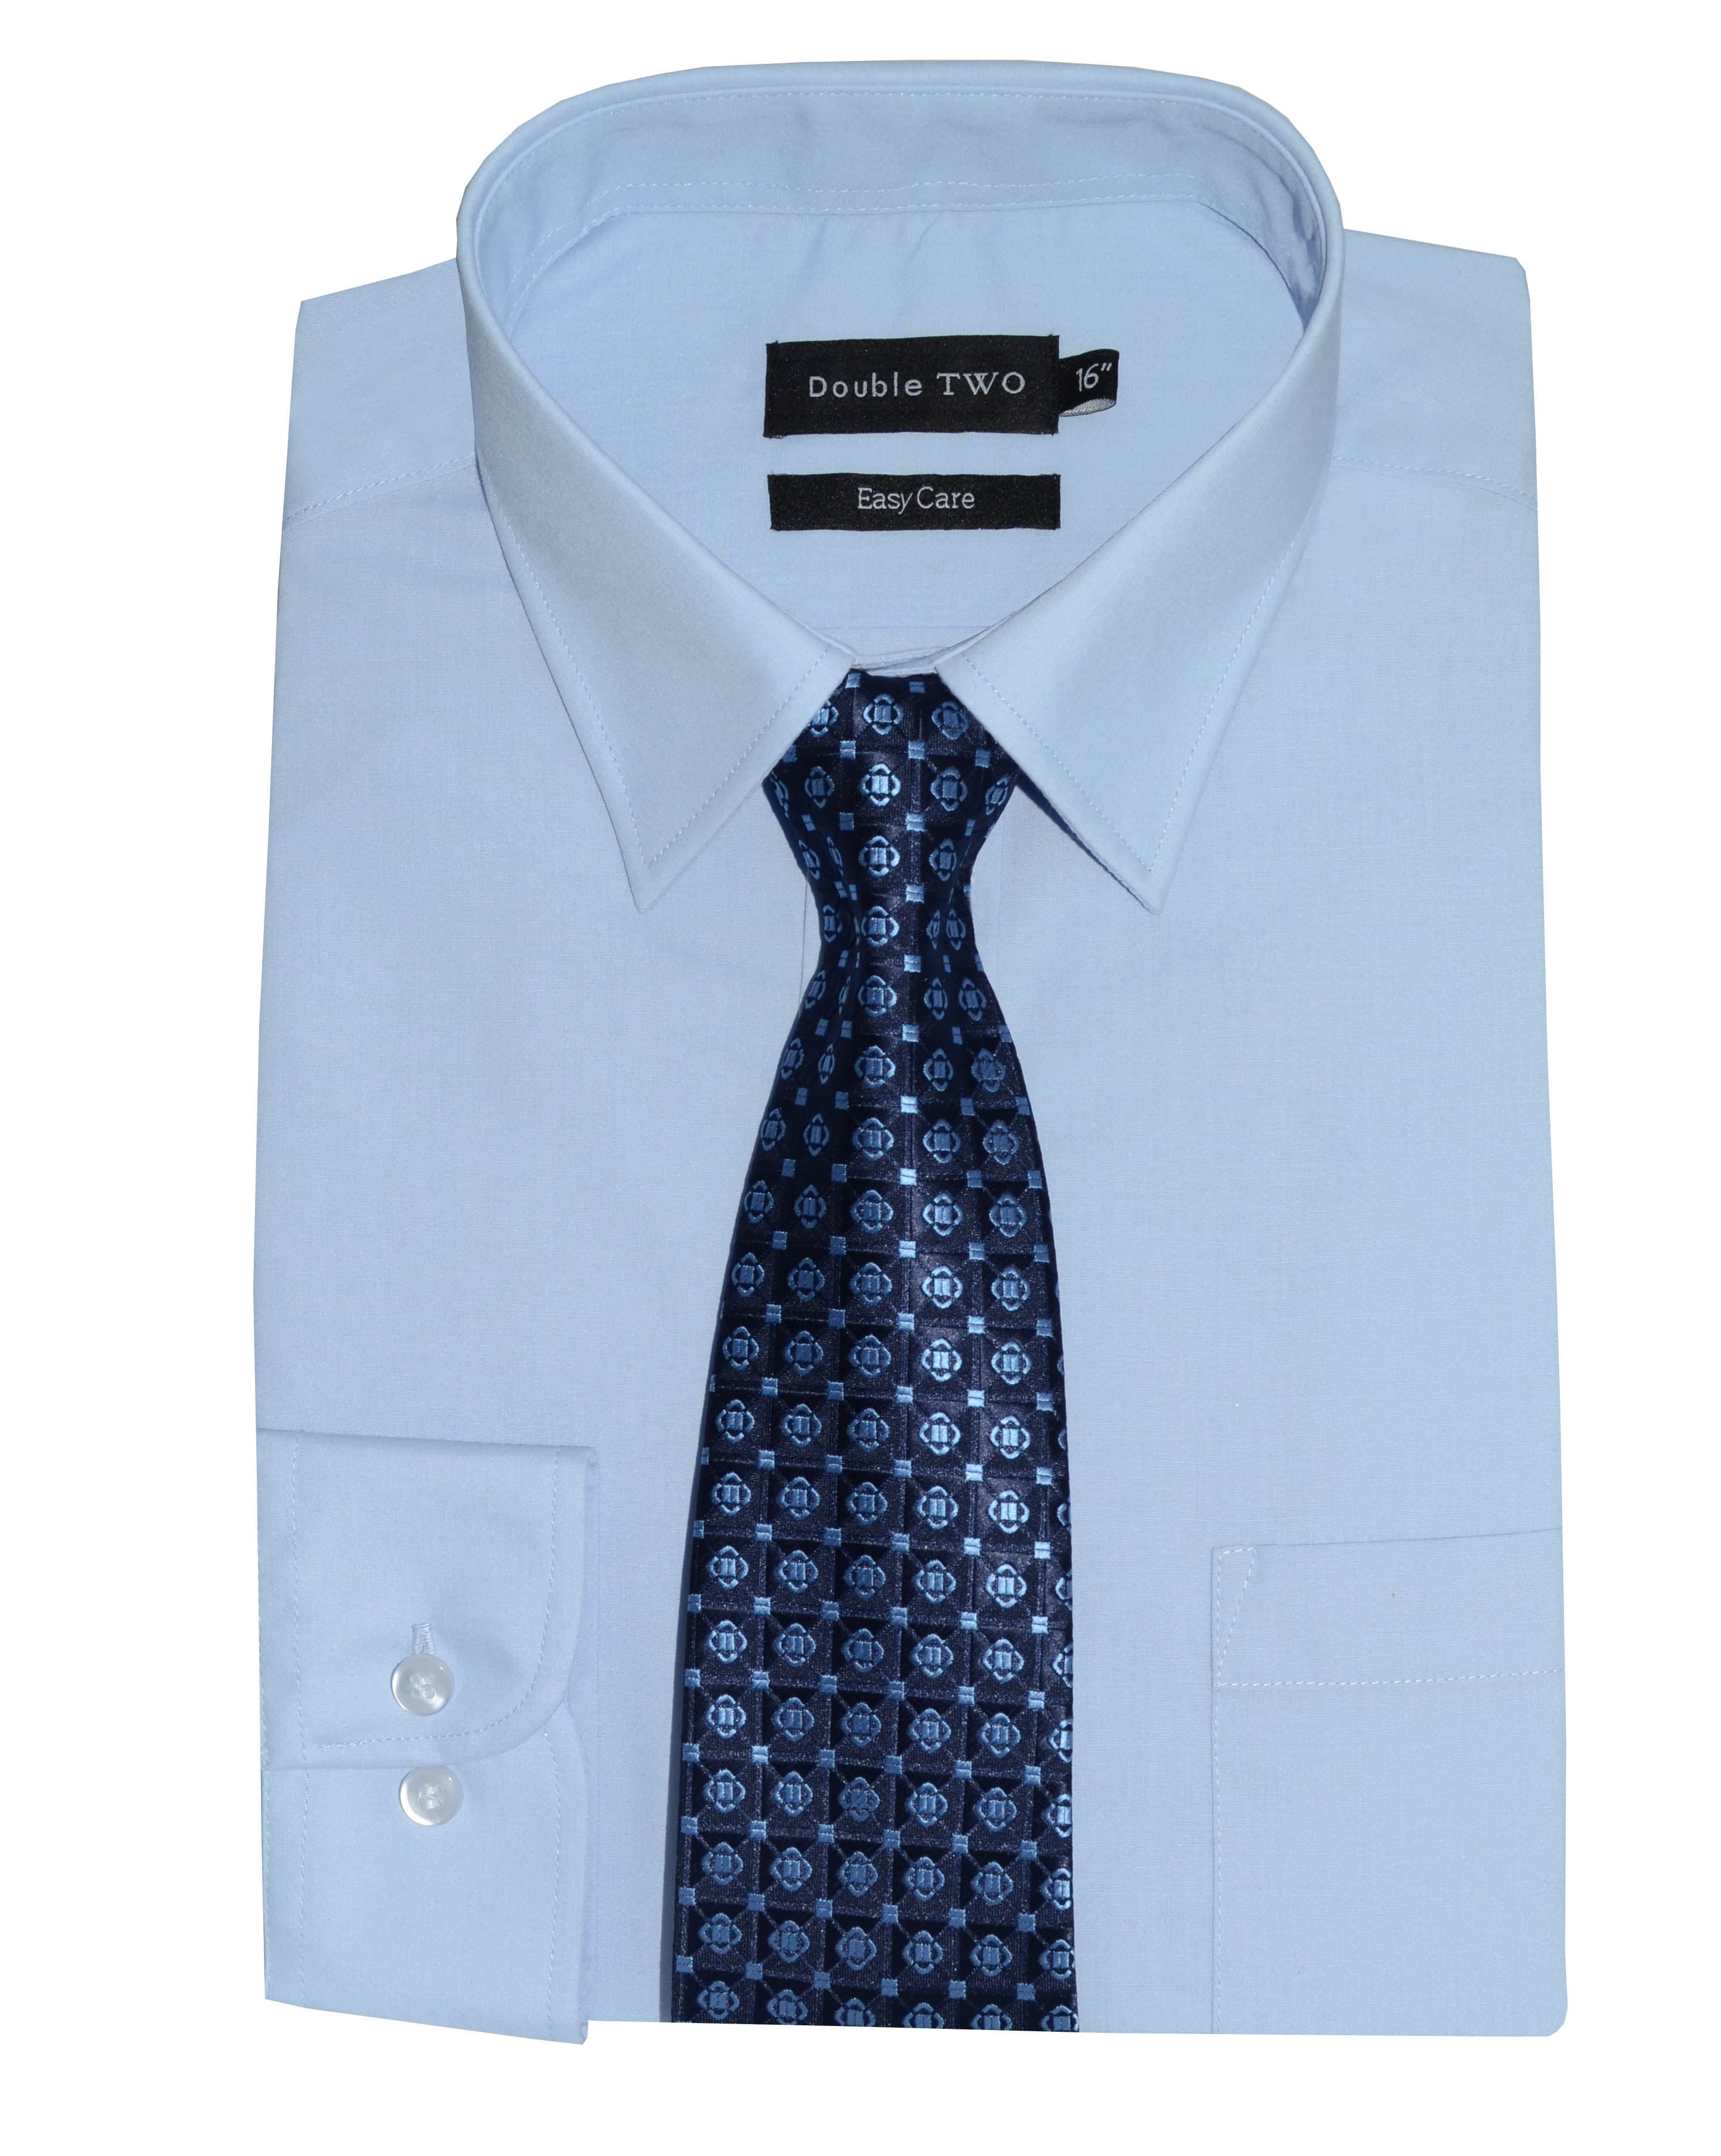 Double Two Blue Formal Shirt And Tie Set